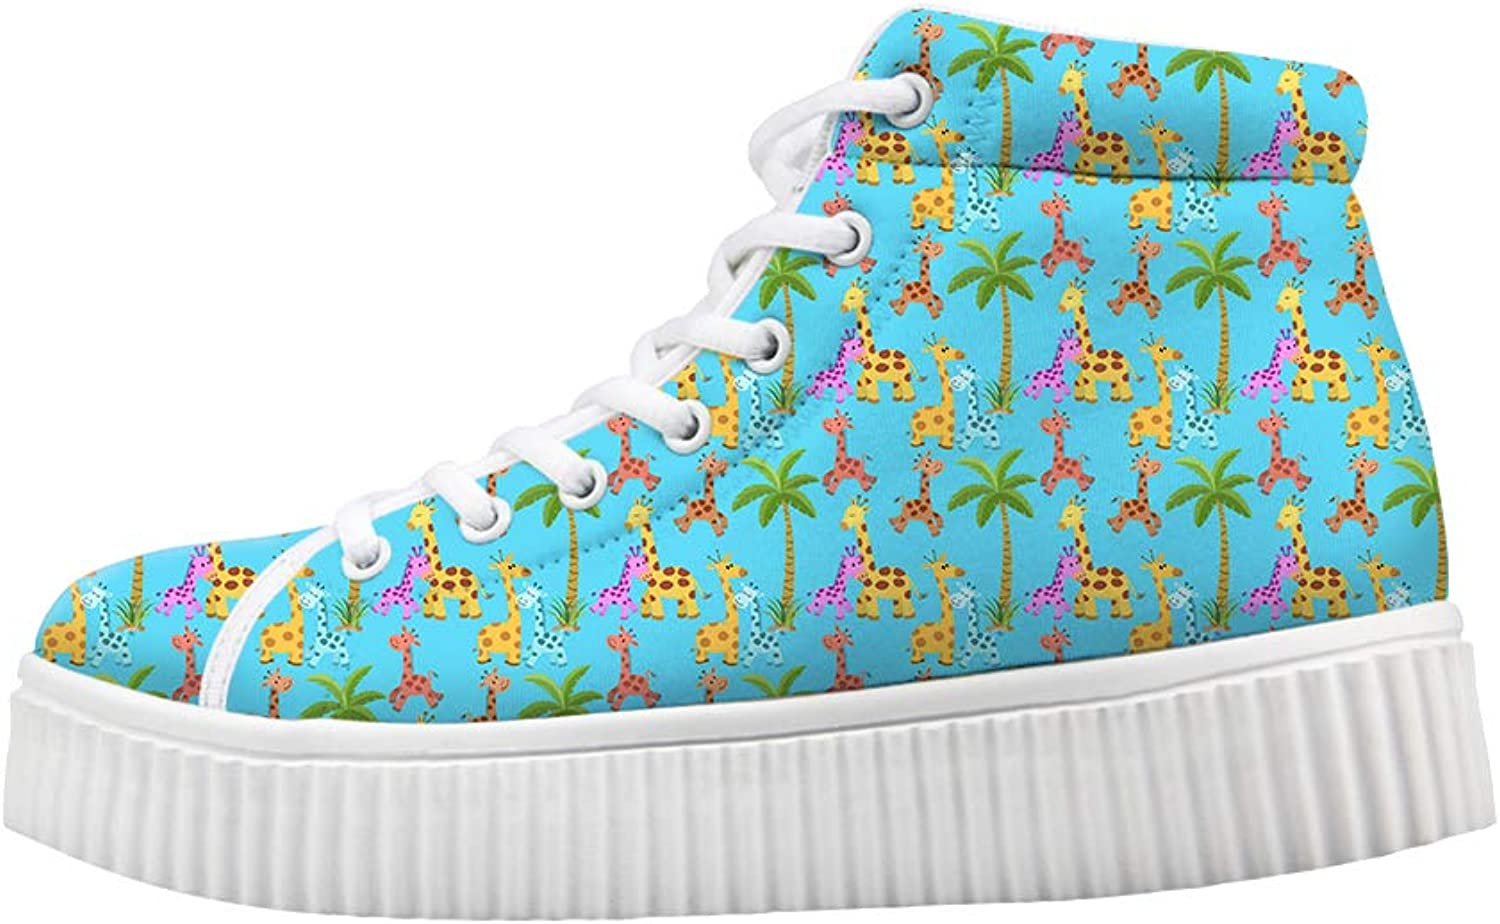 Owaheson Platform Lace up Sneaker Casual Chunky Walking shoes High Top Women Palm Tree colorful Happy Giraffe